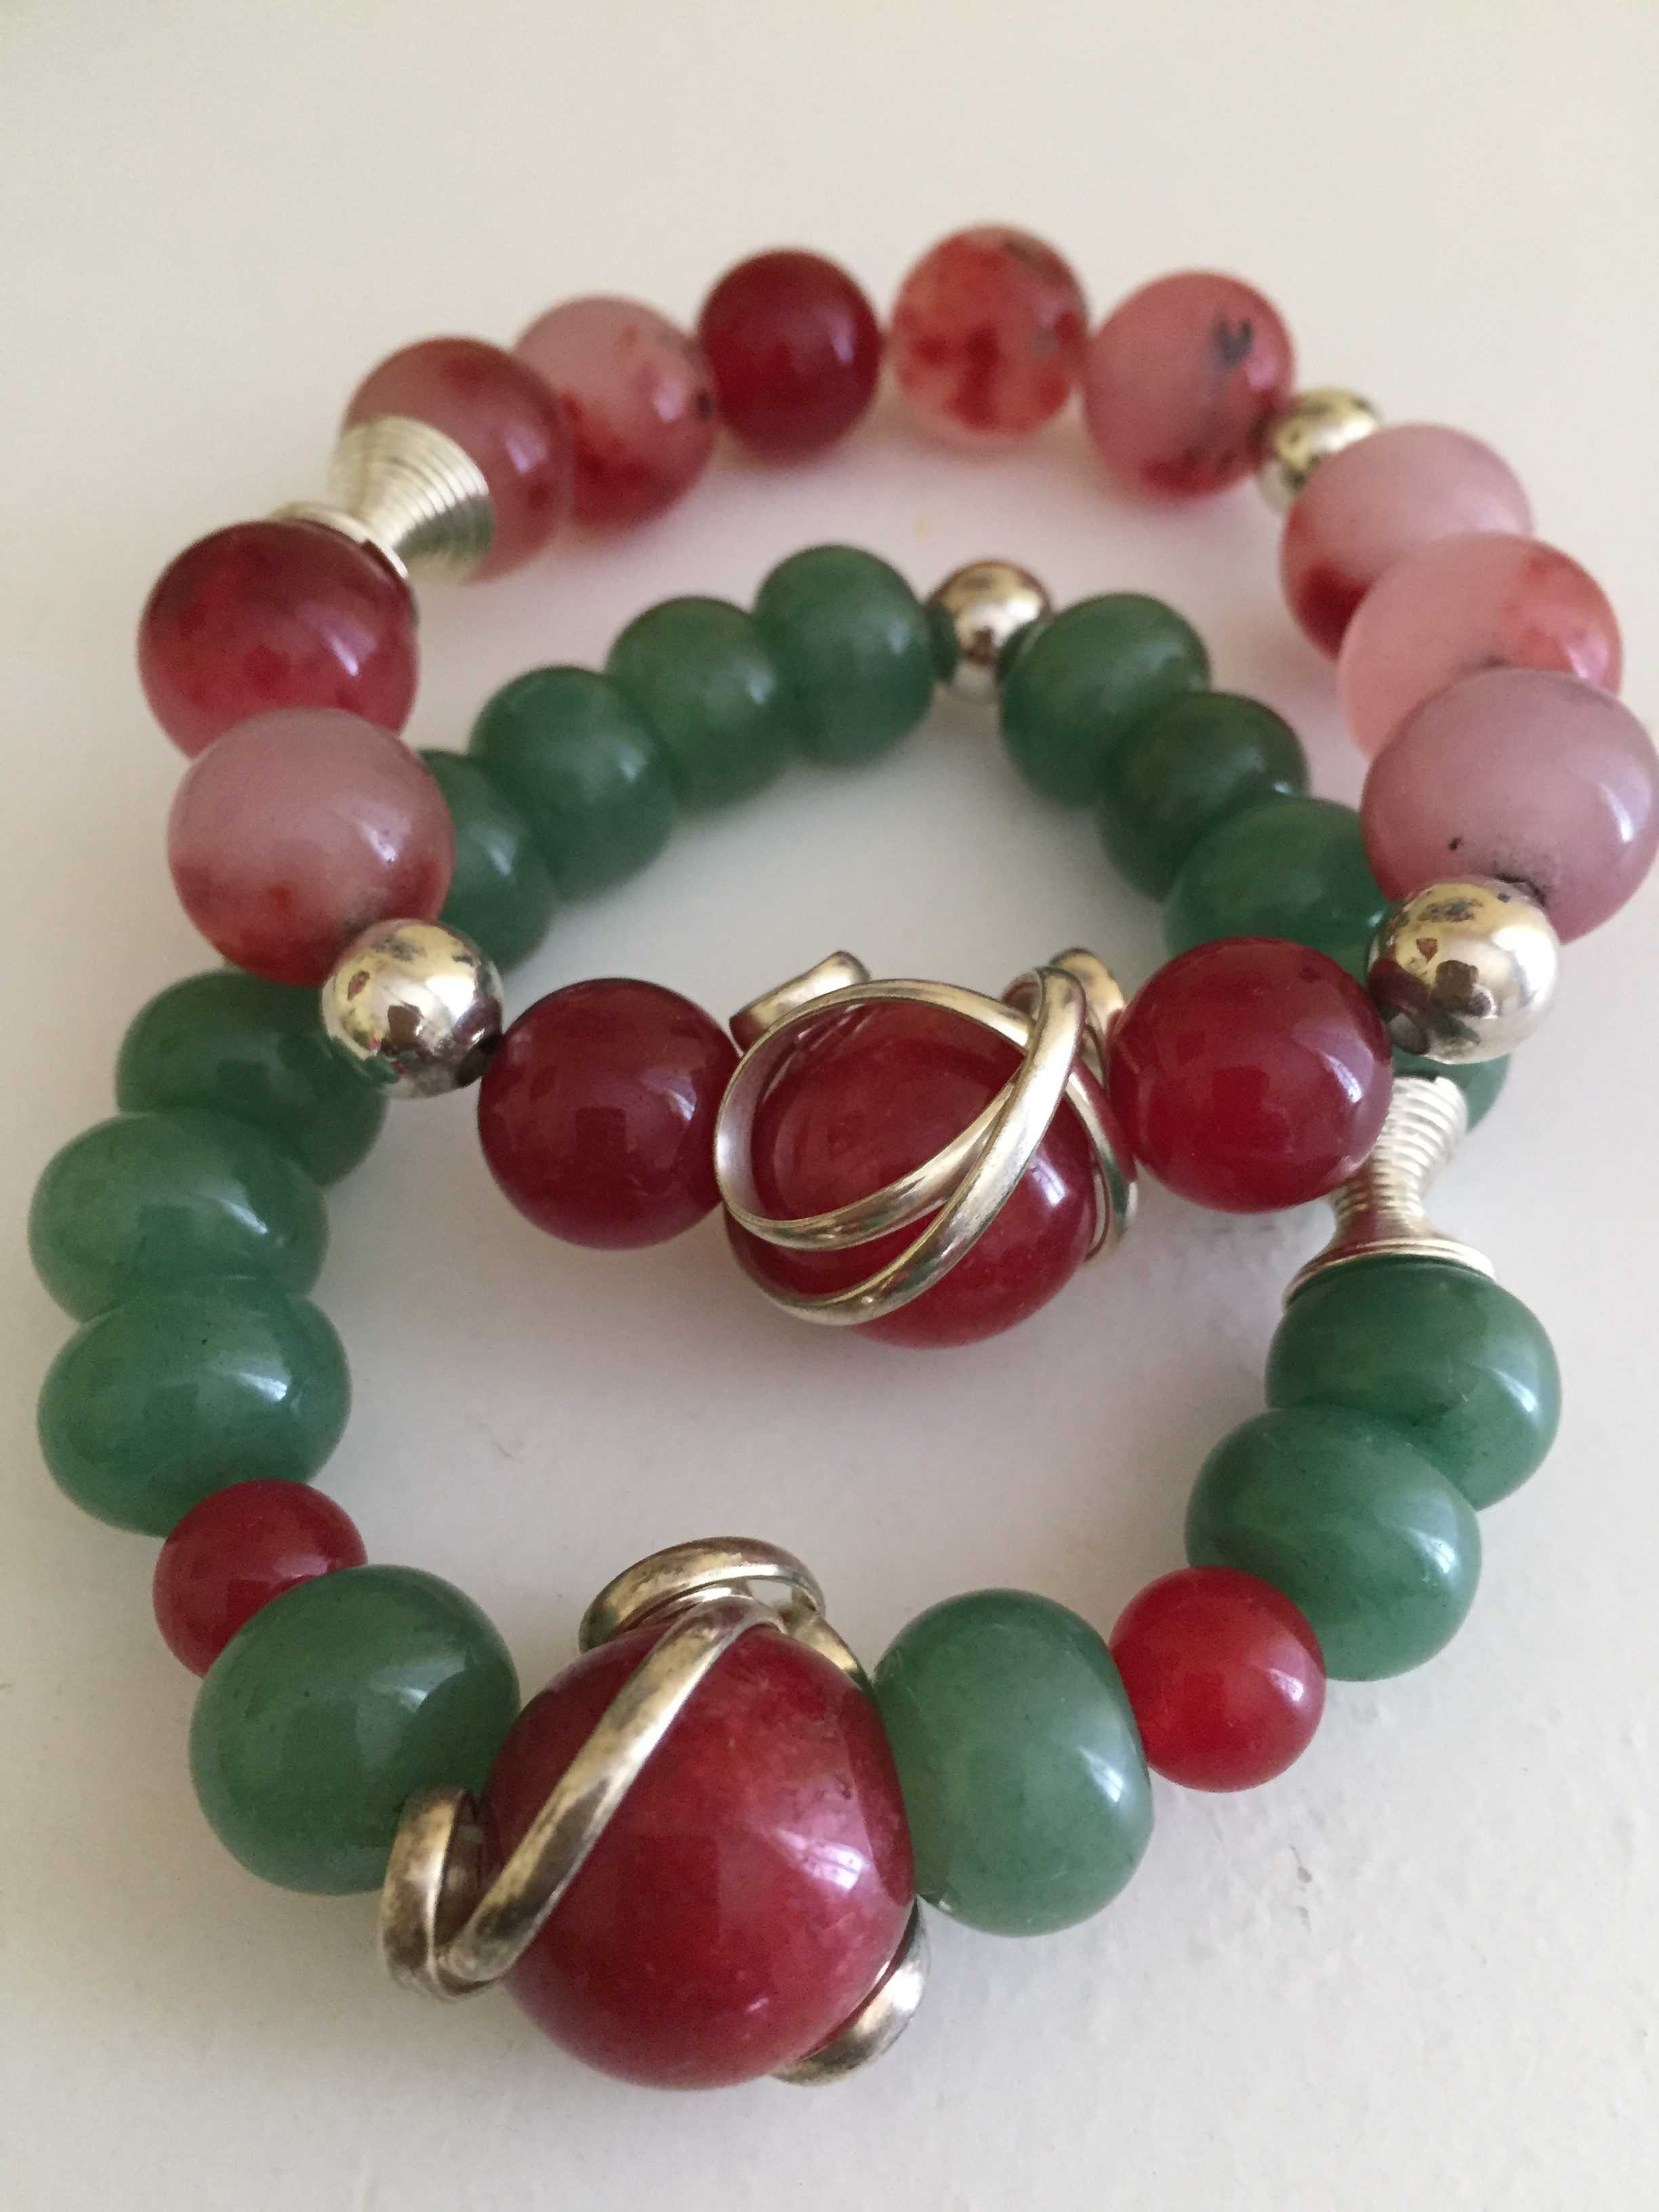 ba ruby item lane bead necklace sterling beads carved jade natural hand sold huge vintage